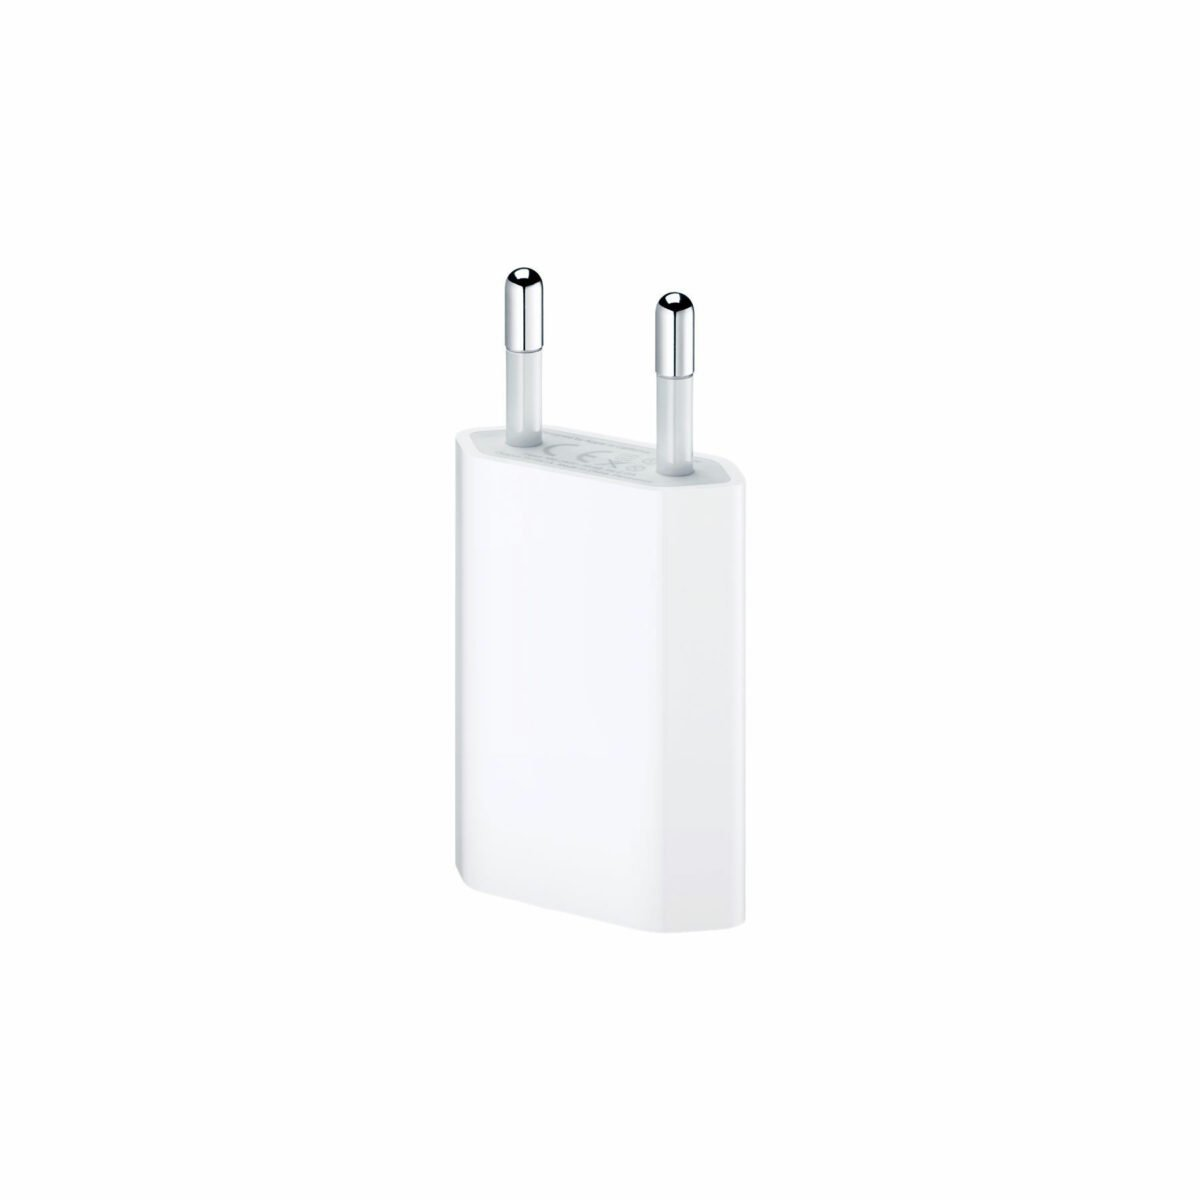 apple-power-adapter